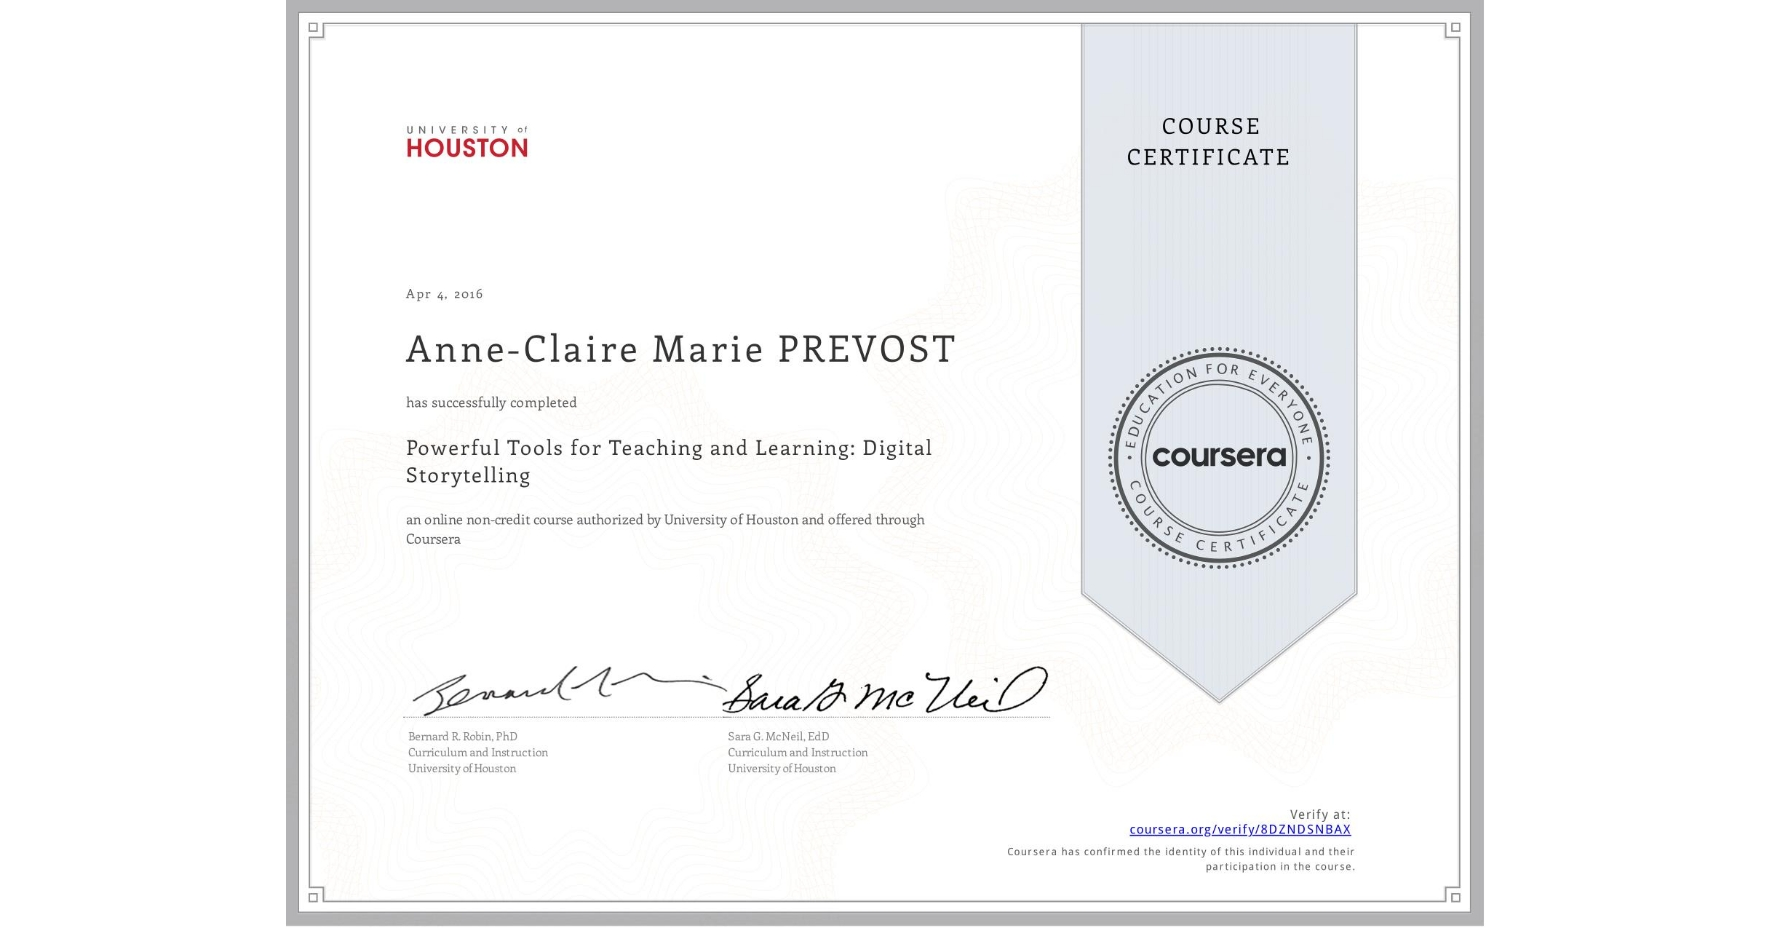 View certificate for Anne-Claire Marie PREVOST, Powerful Tools for Teaching and Learning: Digital Storytelling, an online non-credit course authorized by University of Houston and offered through Coursera